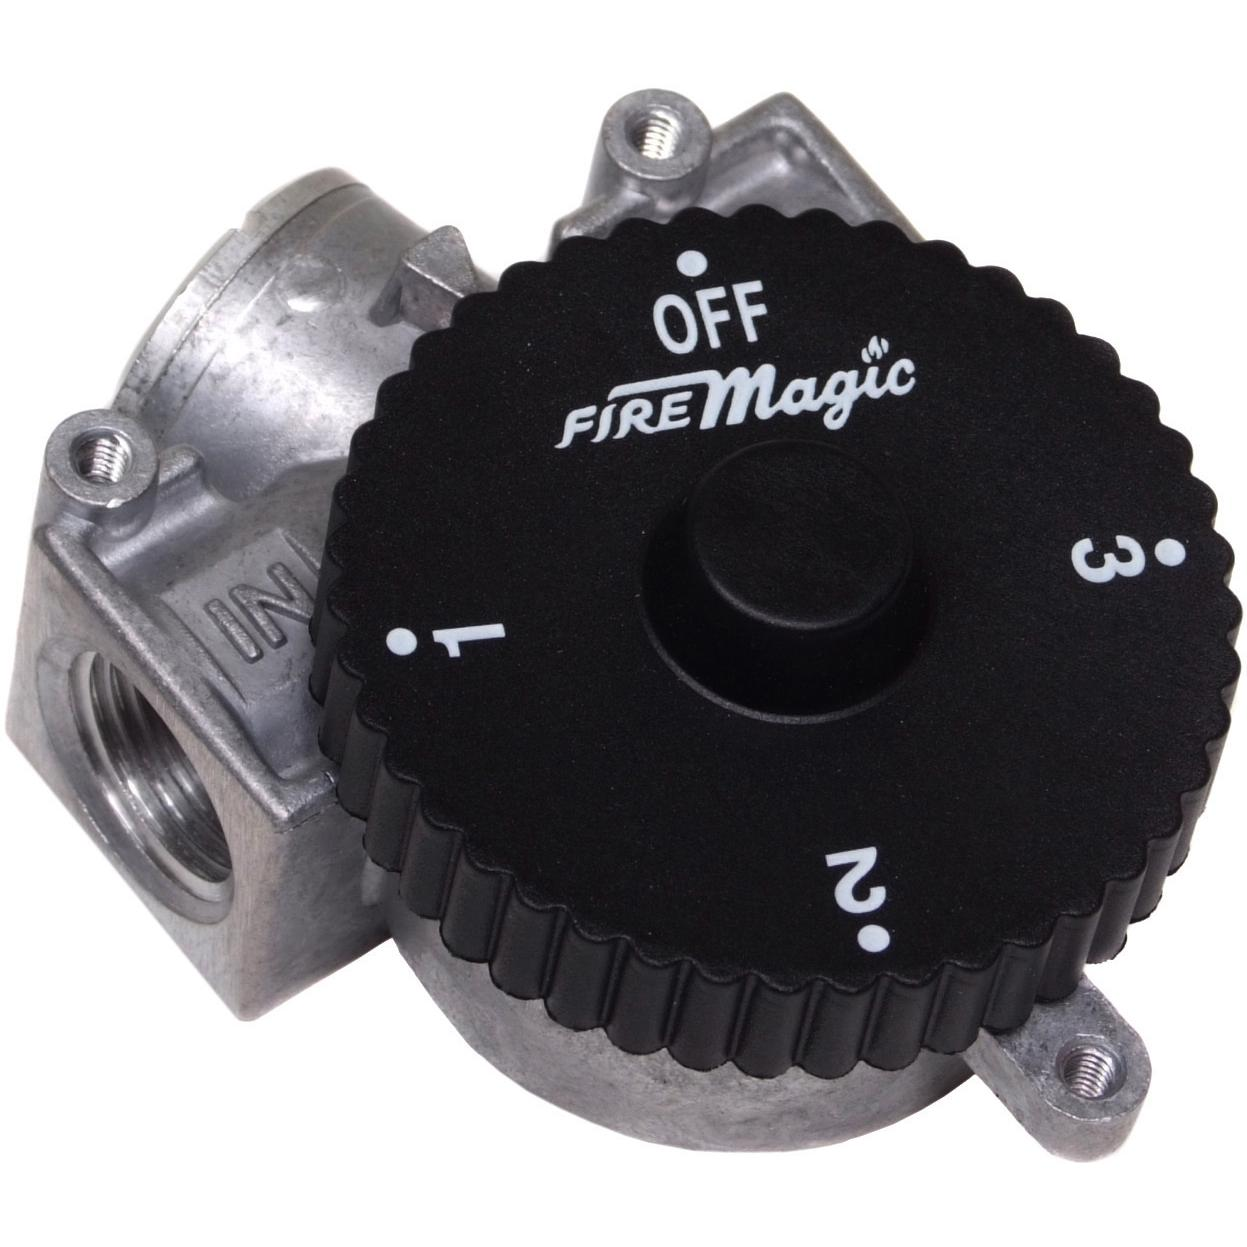 Fire Magic Automatic 1 Hour Timer Gas Safety Shut-off Valve 3092